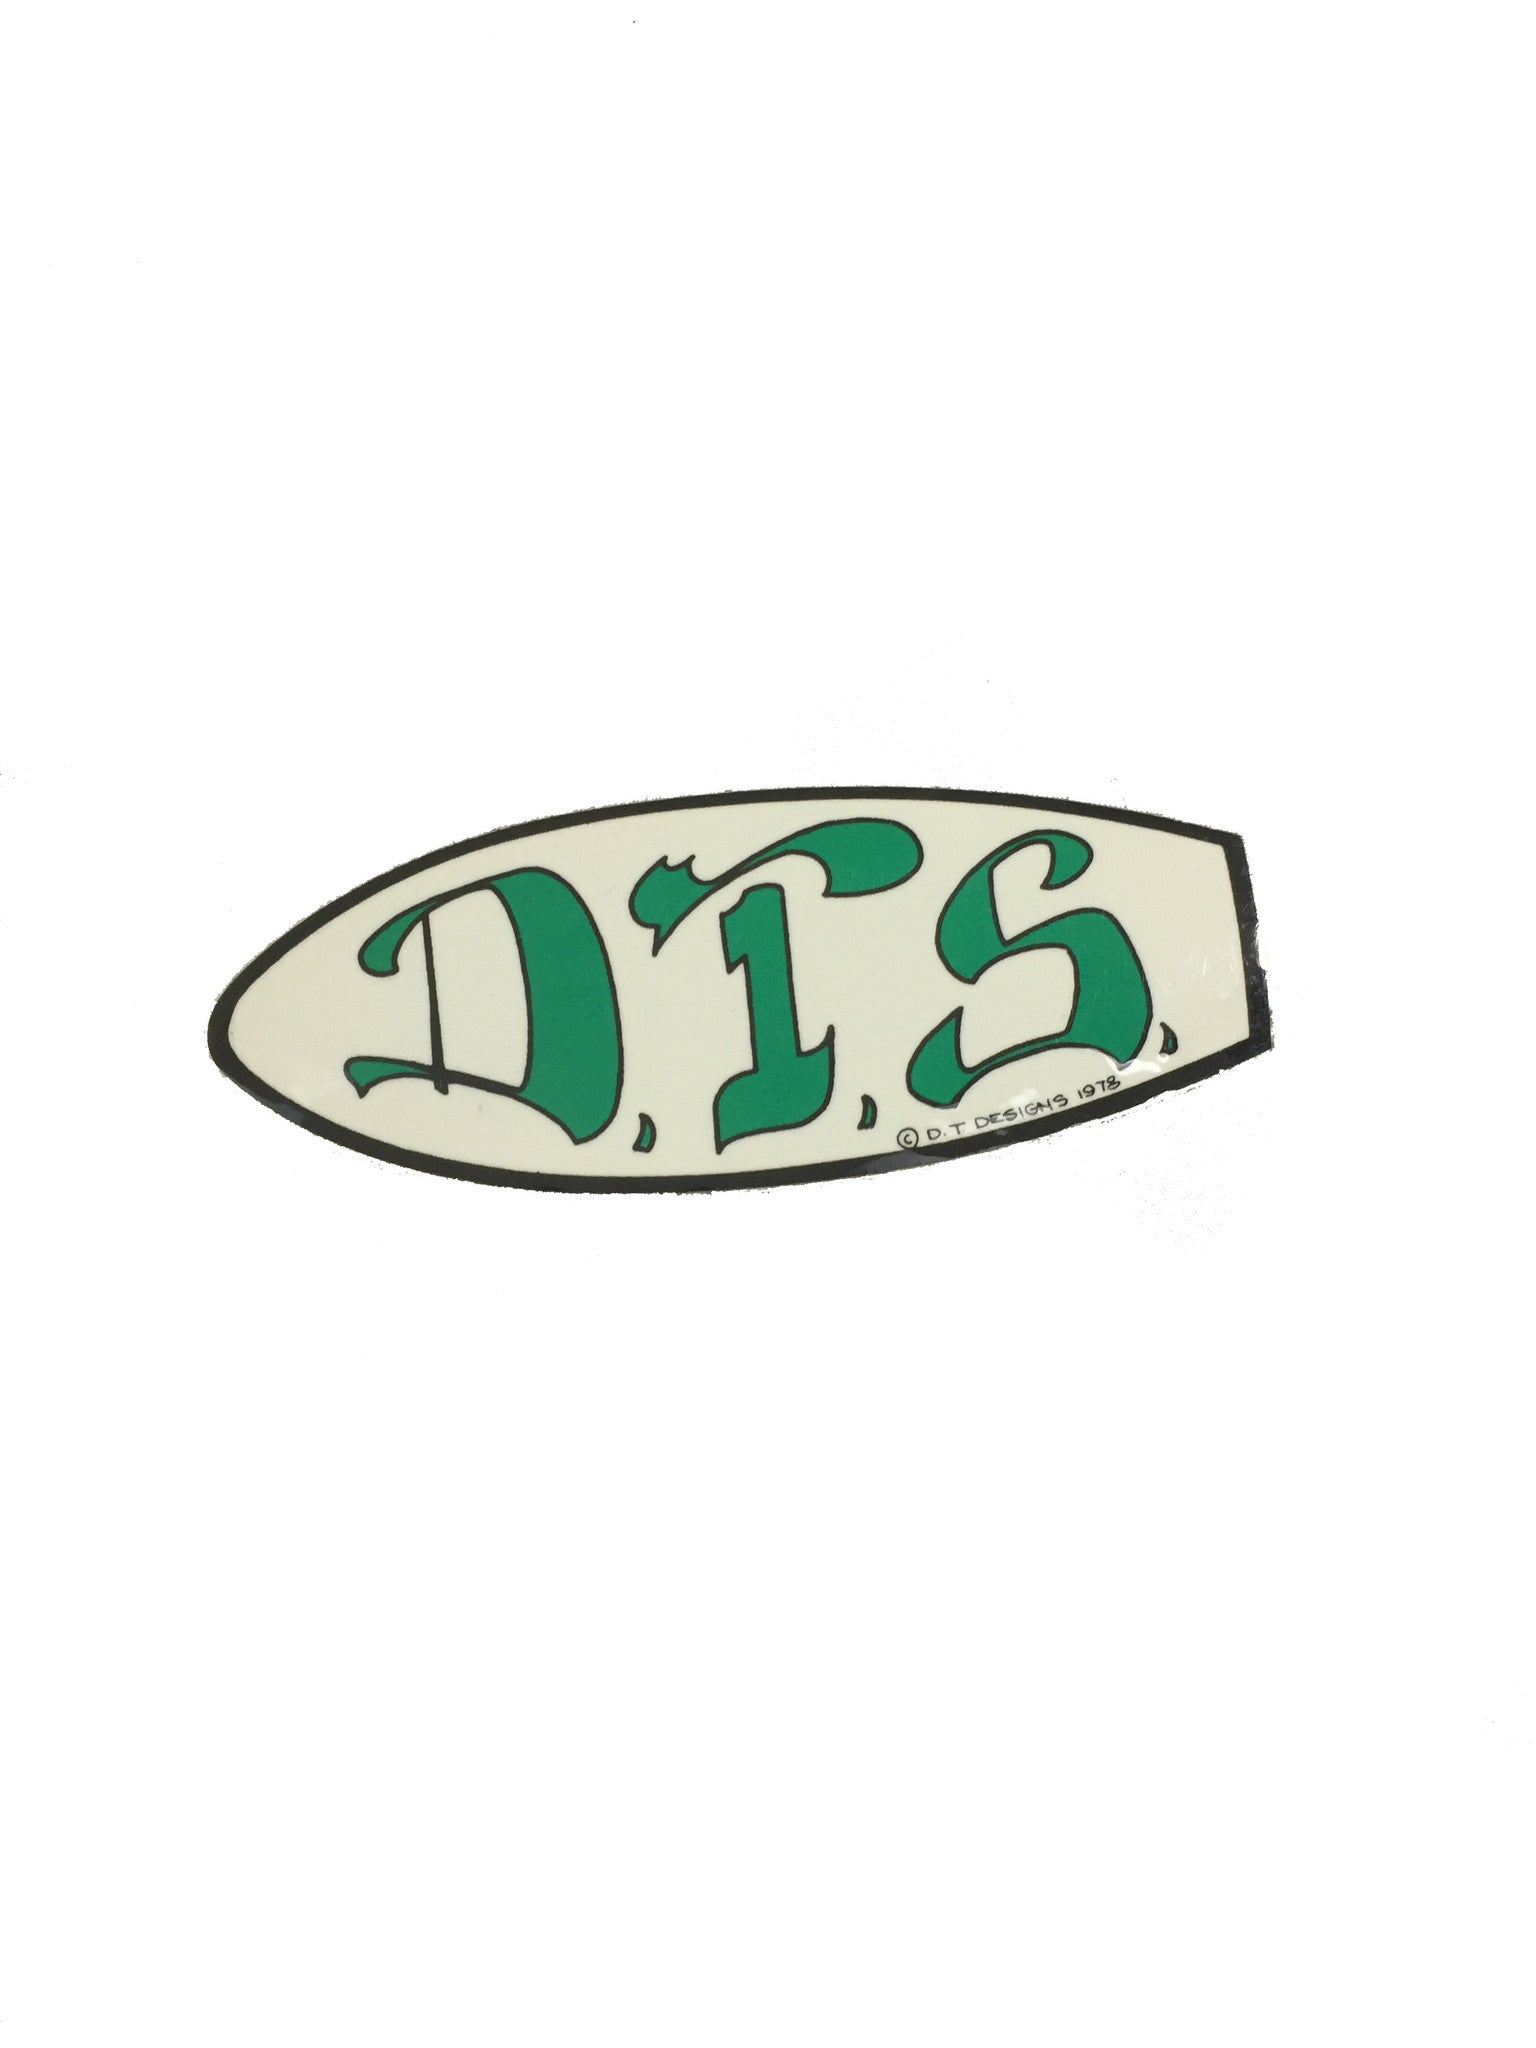 Dog Town - DTS Sticker Green 1978